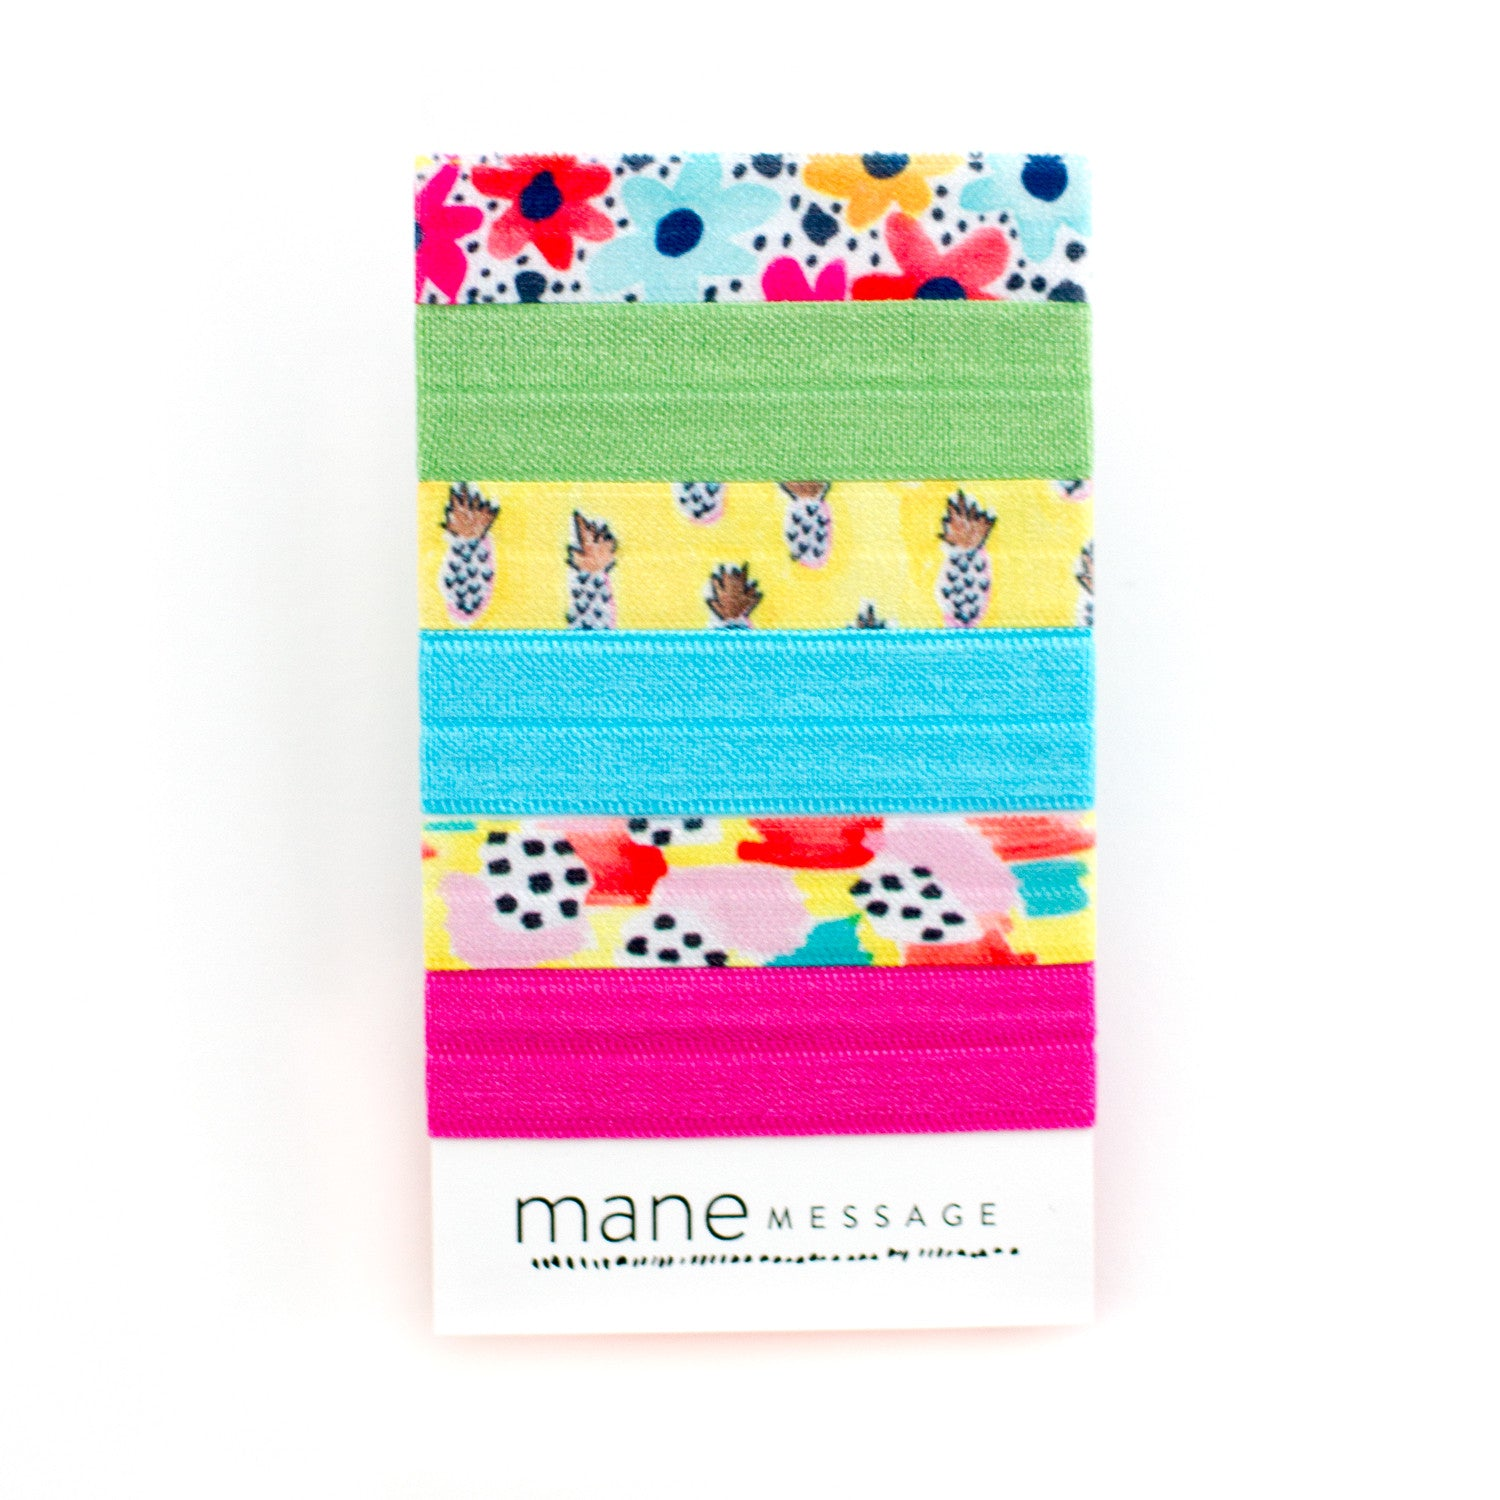 pineapple floral polka dot print hair ties made with my friend court and mane message